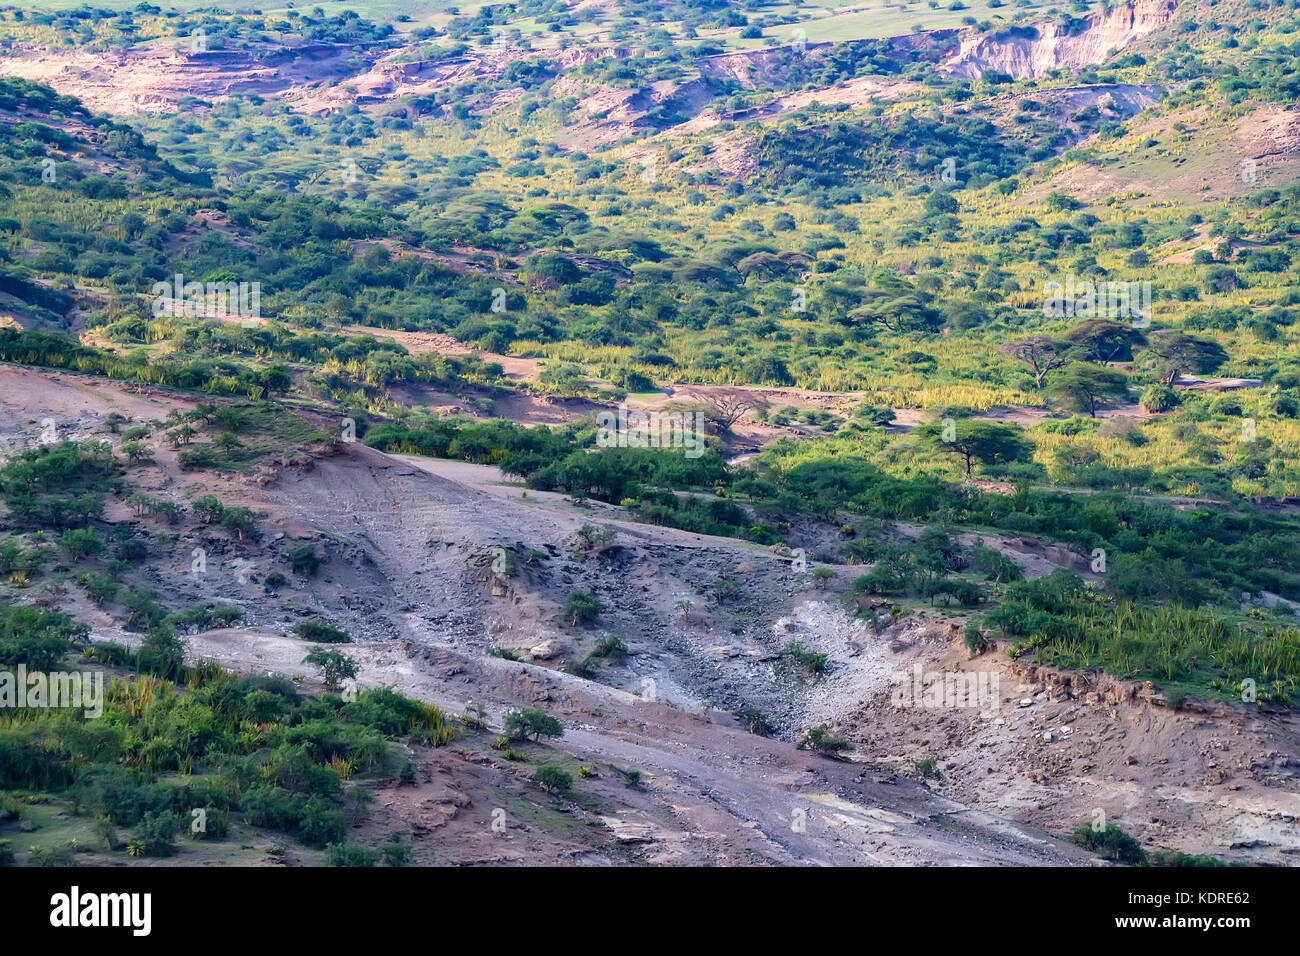 Scenic view of Olduvai Gorge - Stock Image